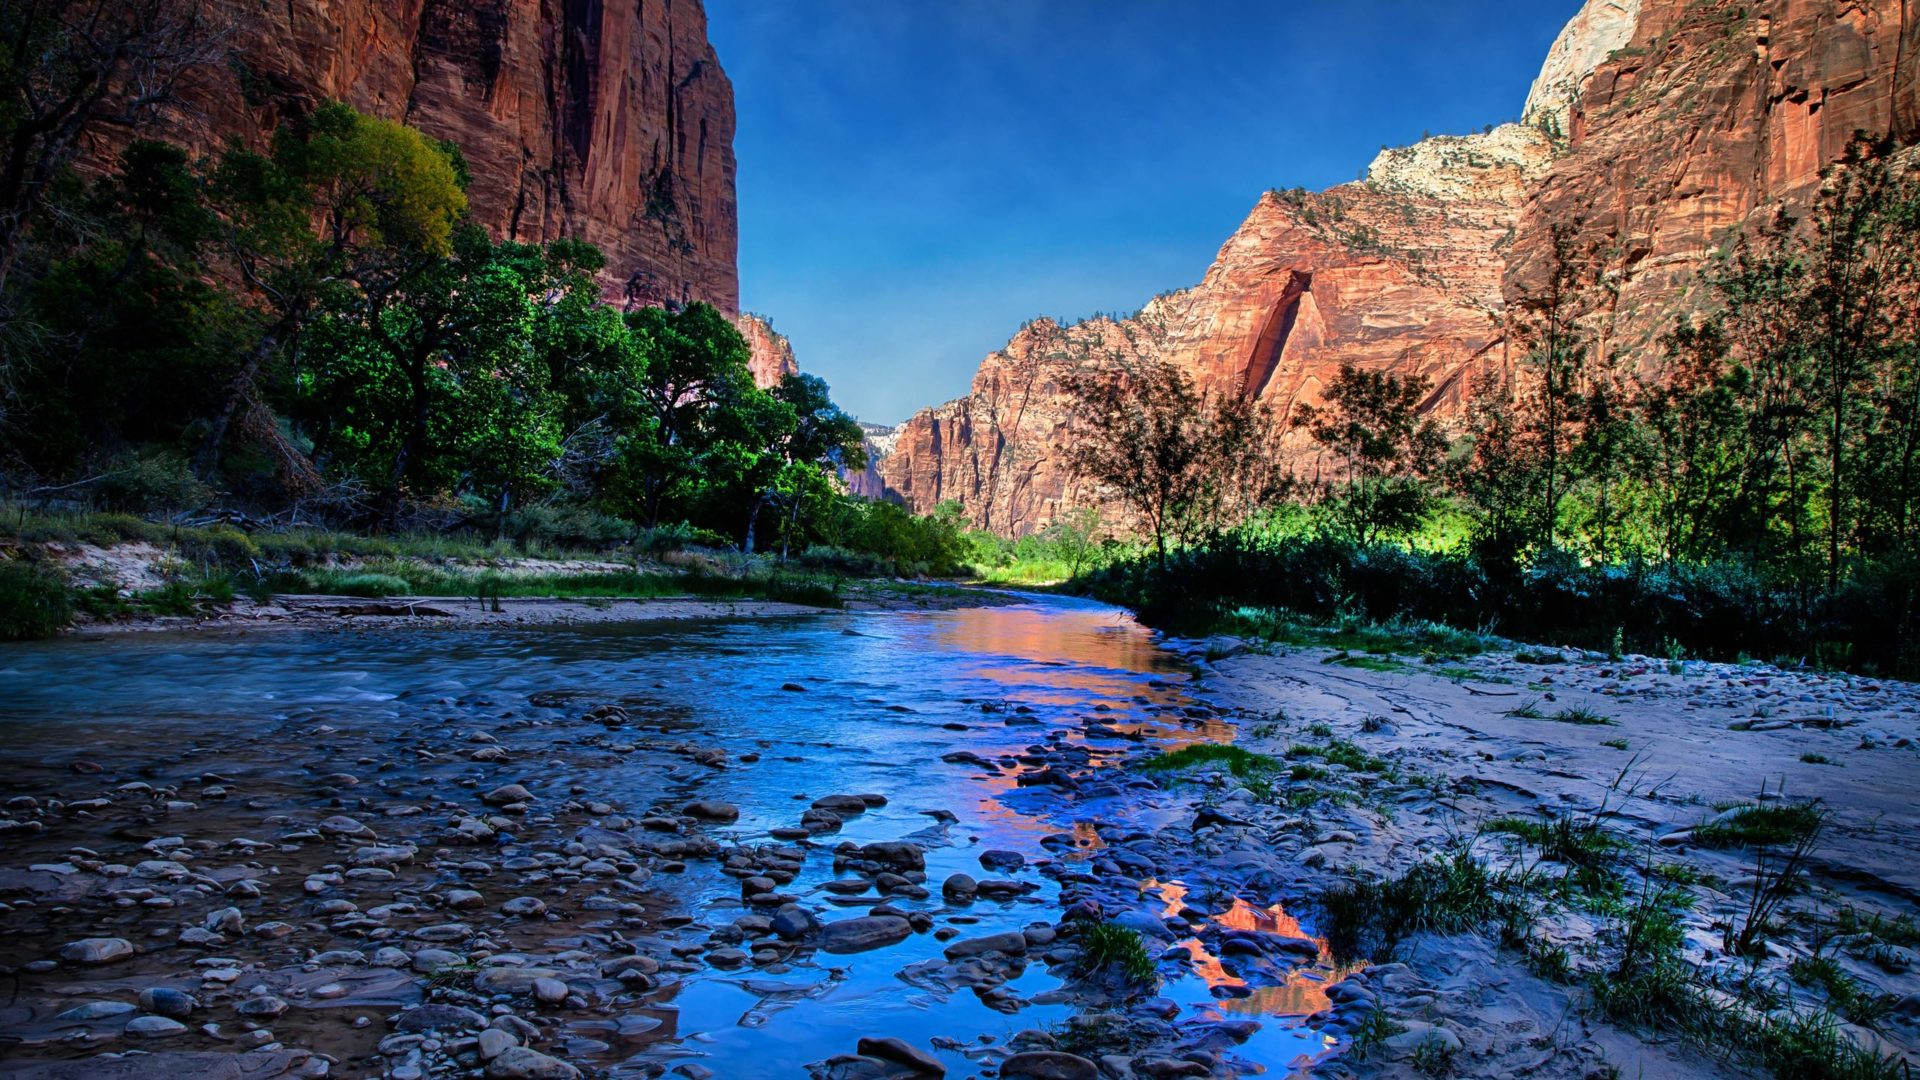 Wallpaper Images Of Mountains In Fall Usa Parks Water Mountains Zion Hdr Nature River Wallpaper